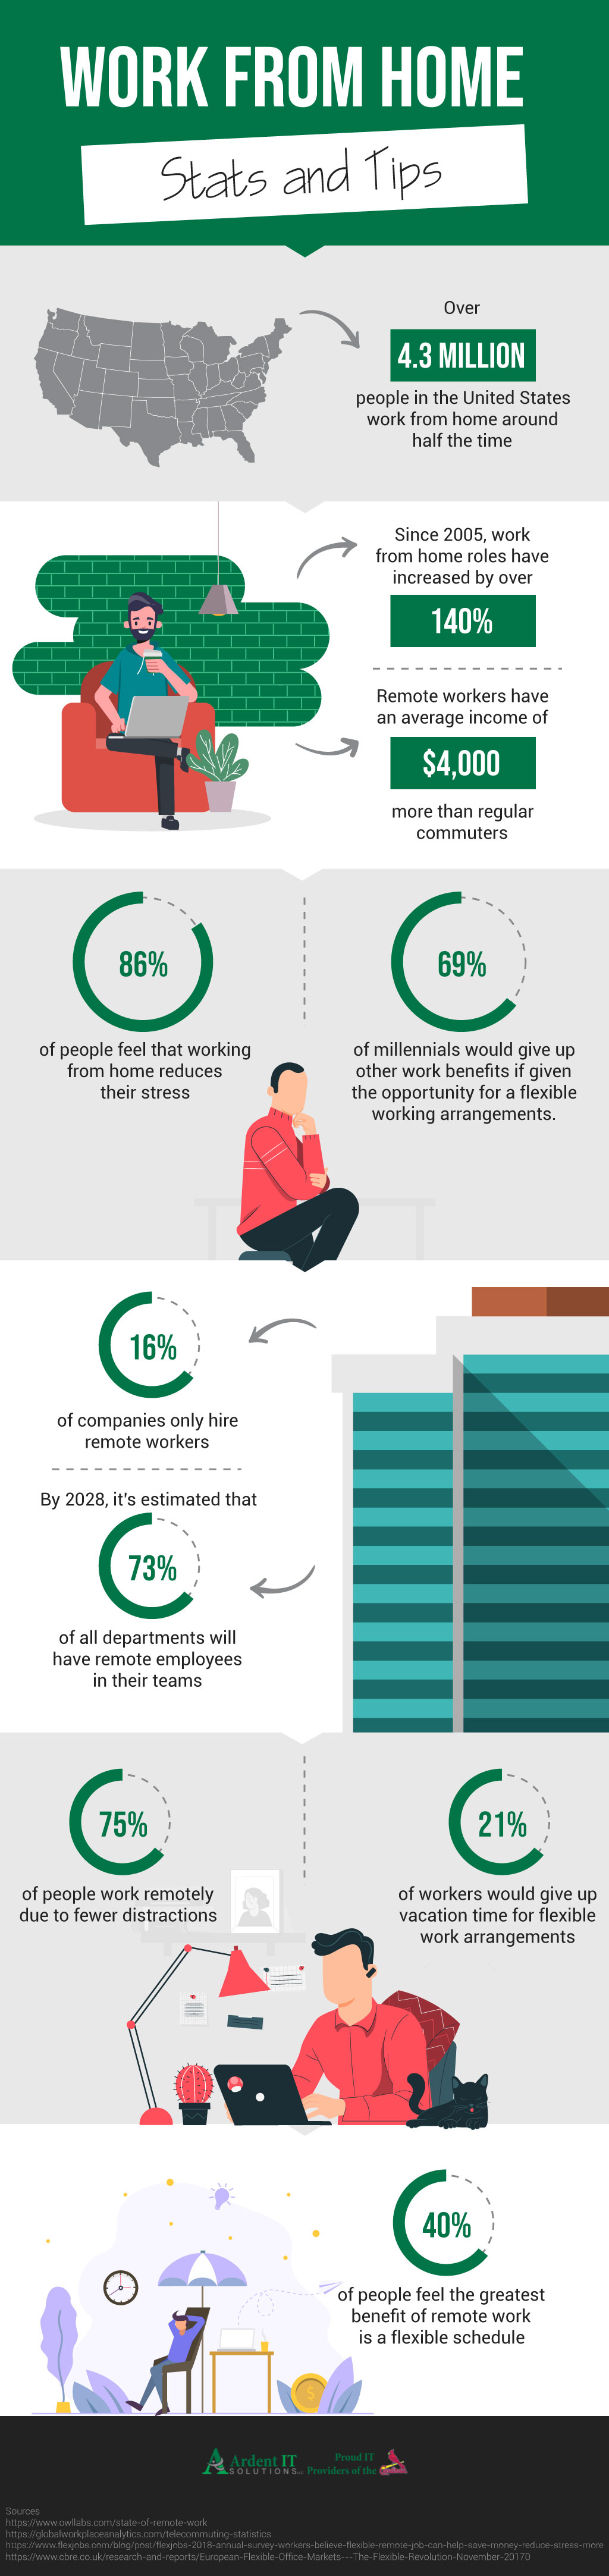 work-from-home-stats-infographic-plaza